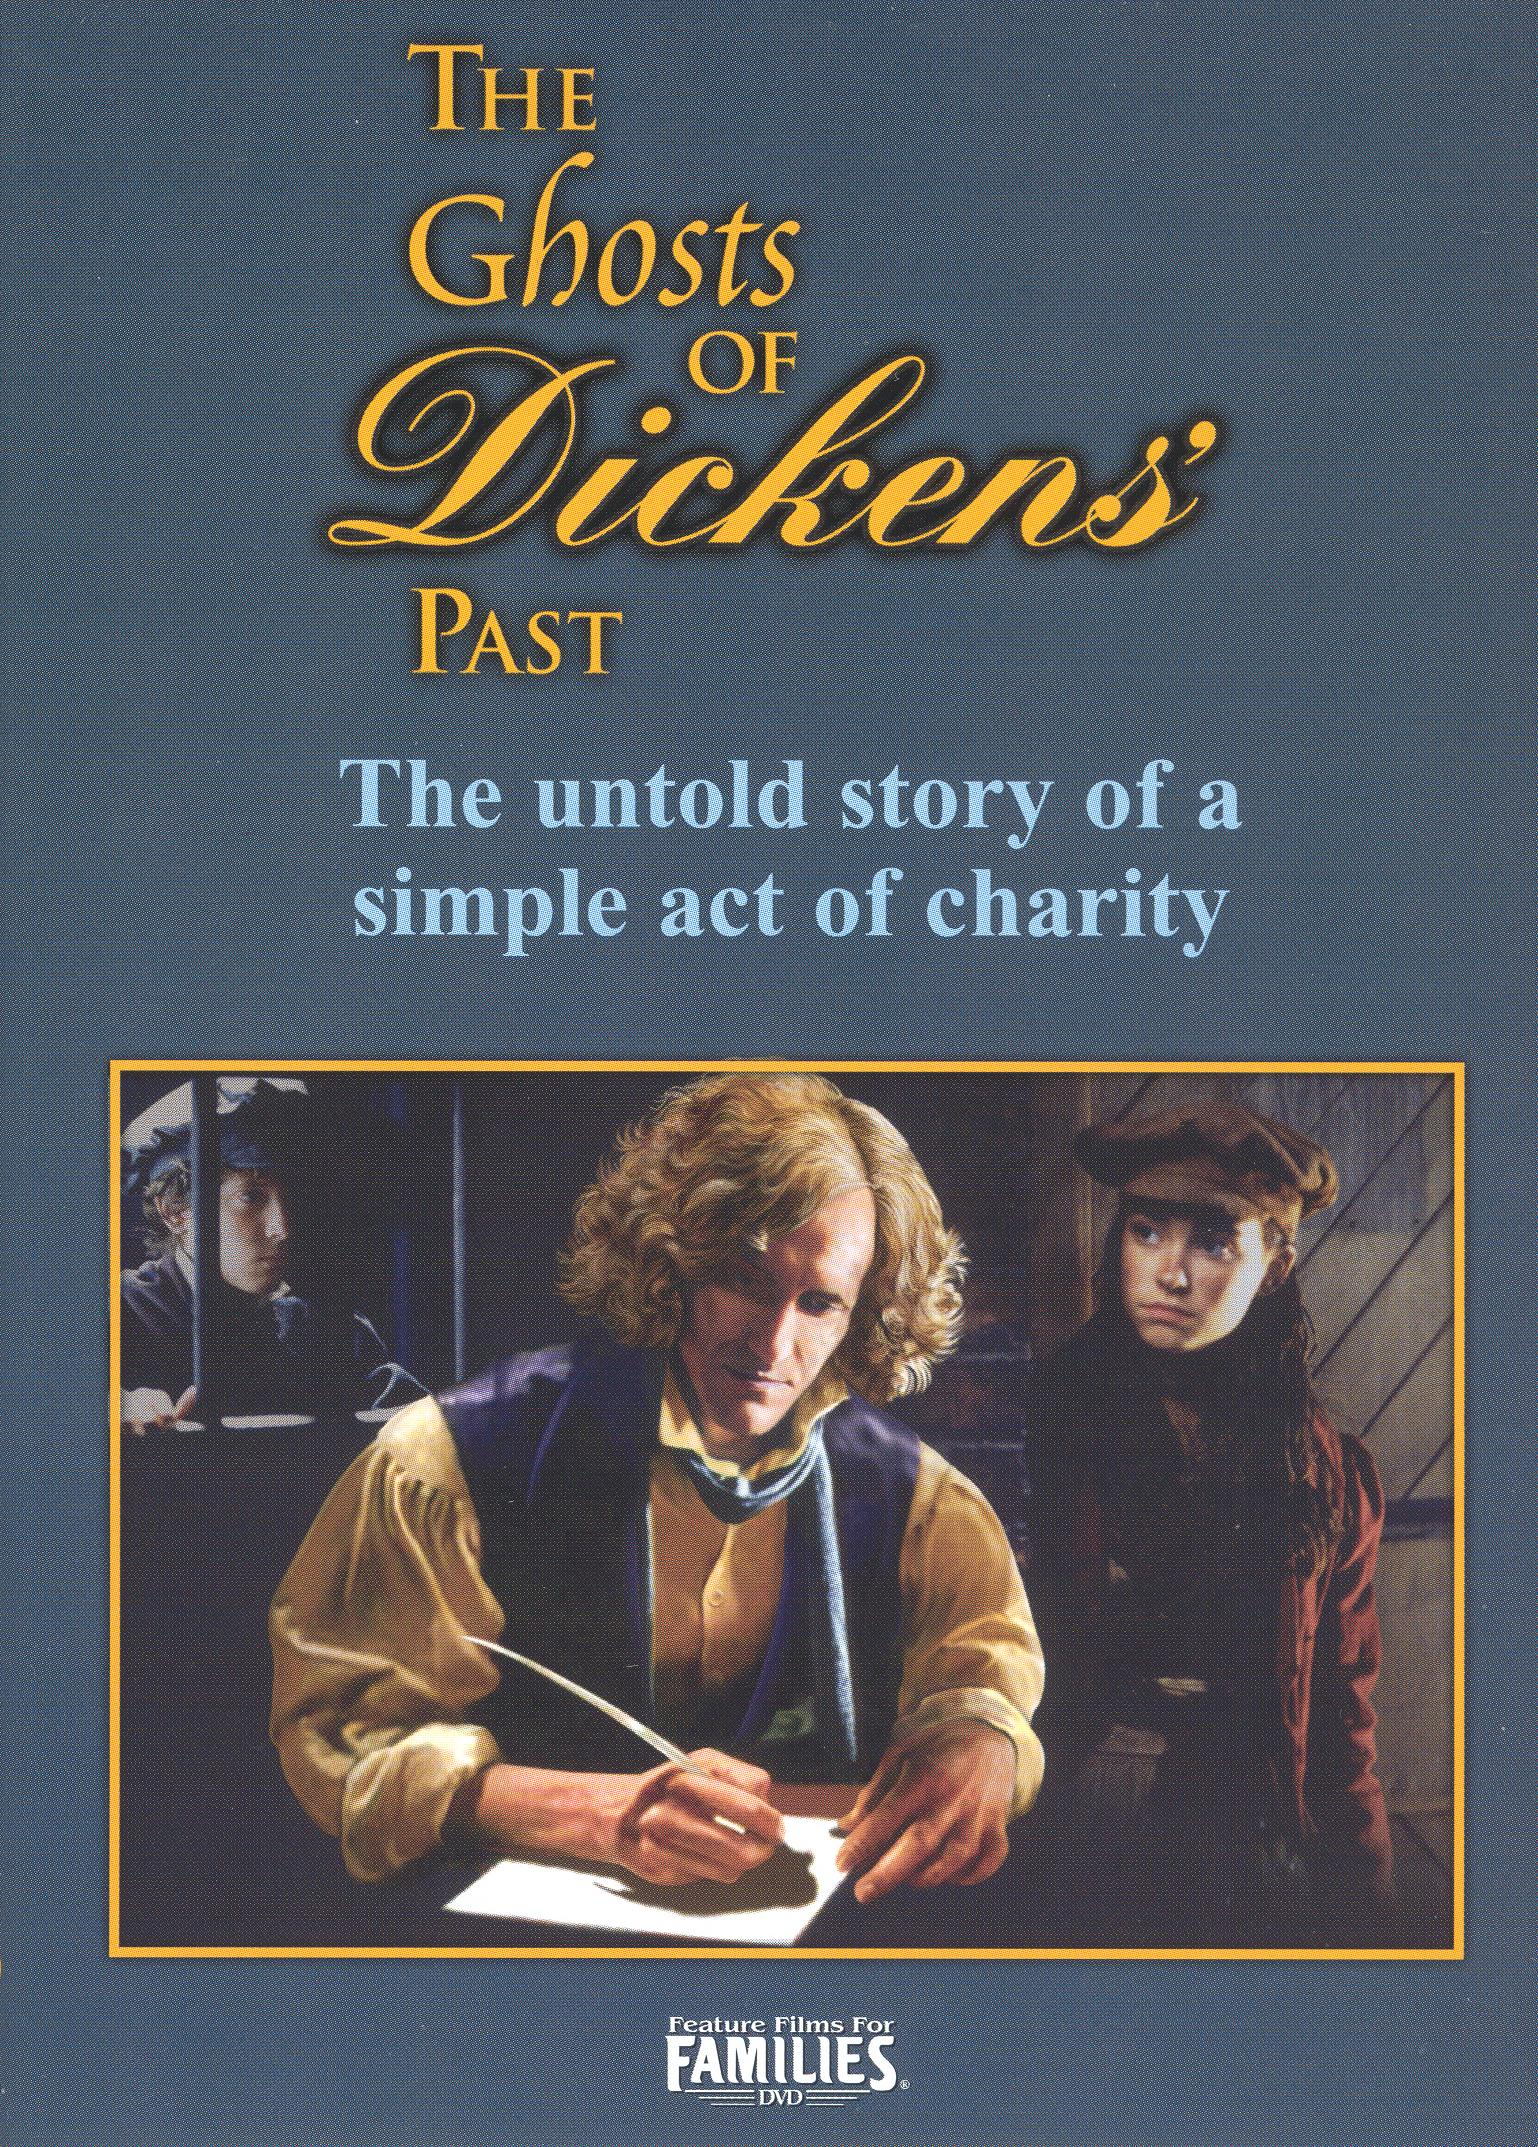 The Ghost of Dickens' Past